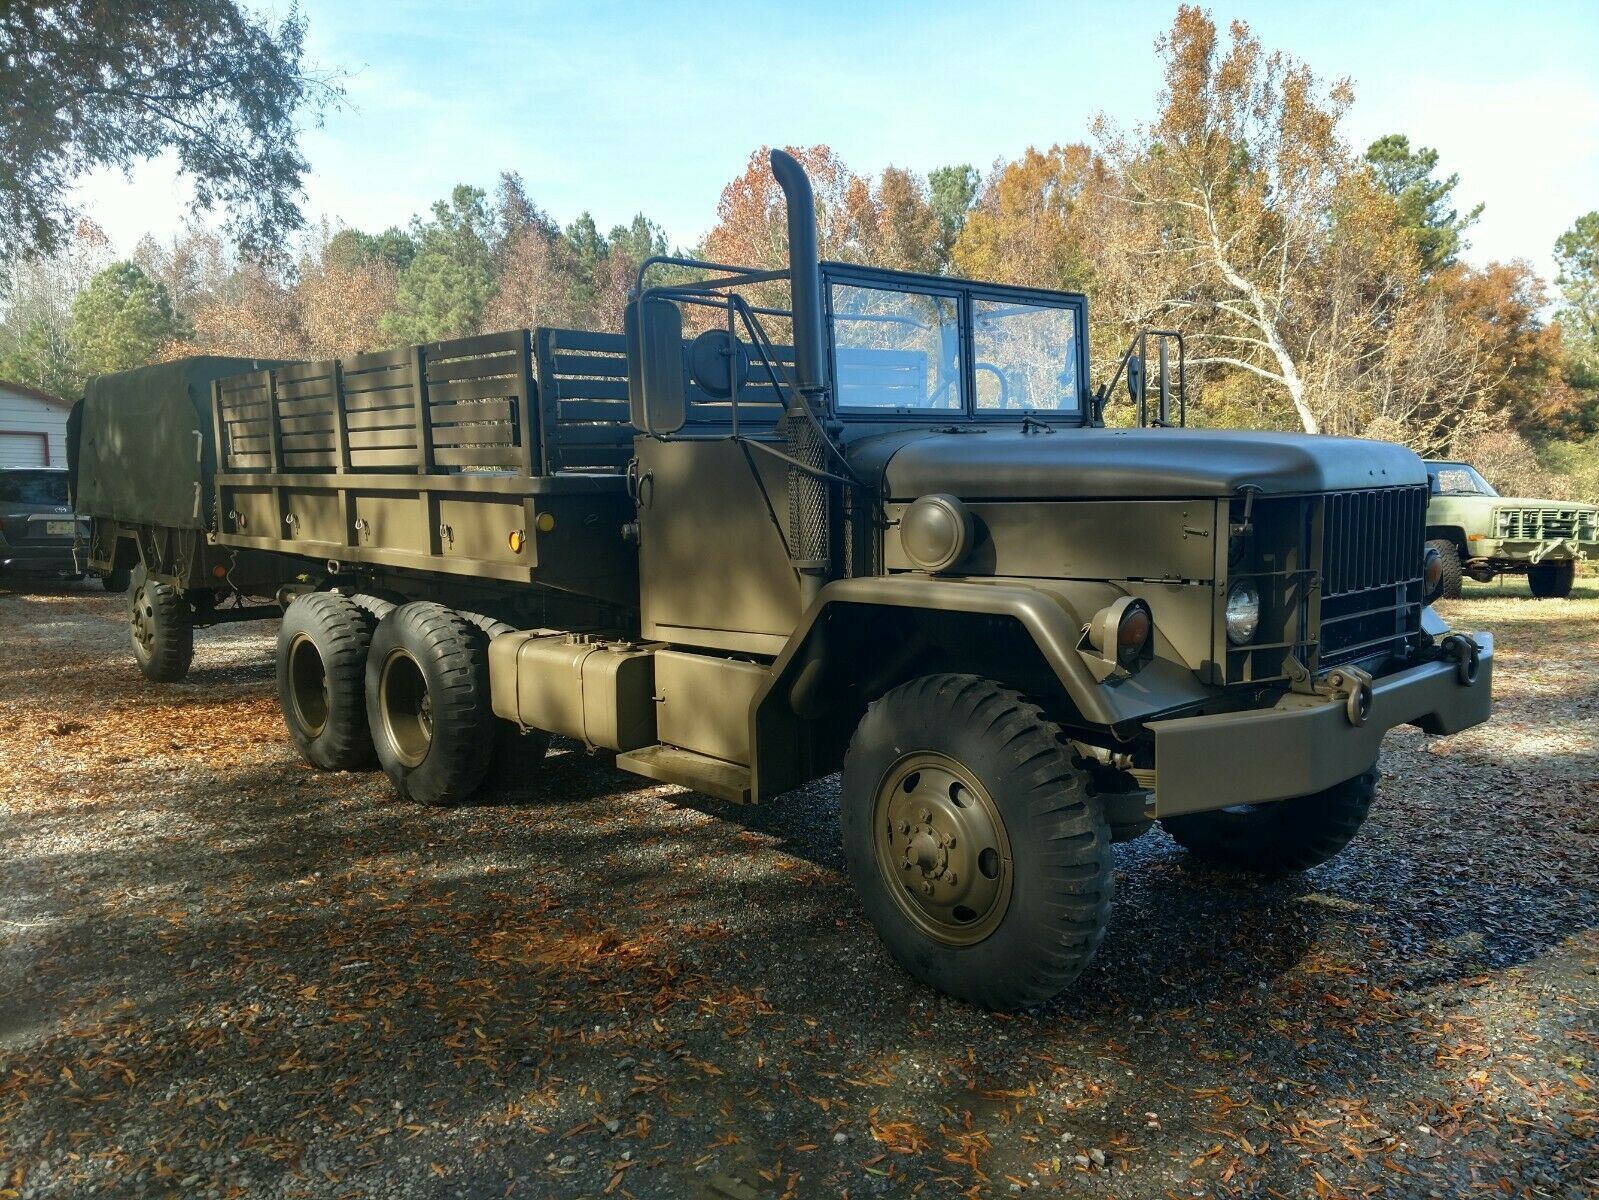 Professionally Restored 1966 AM General  M35 A2 military for sale